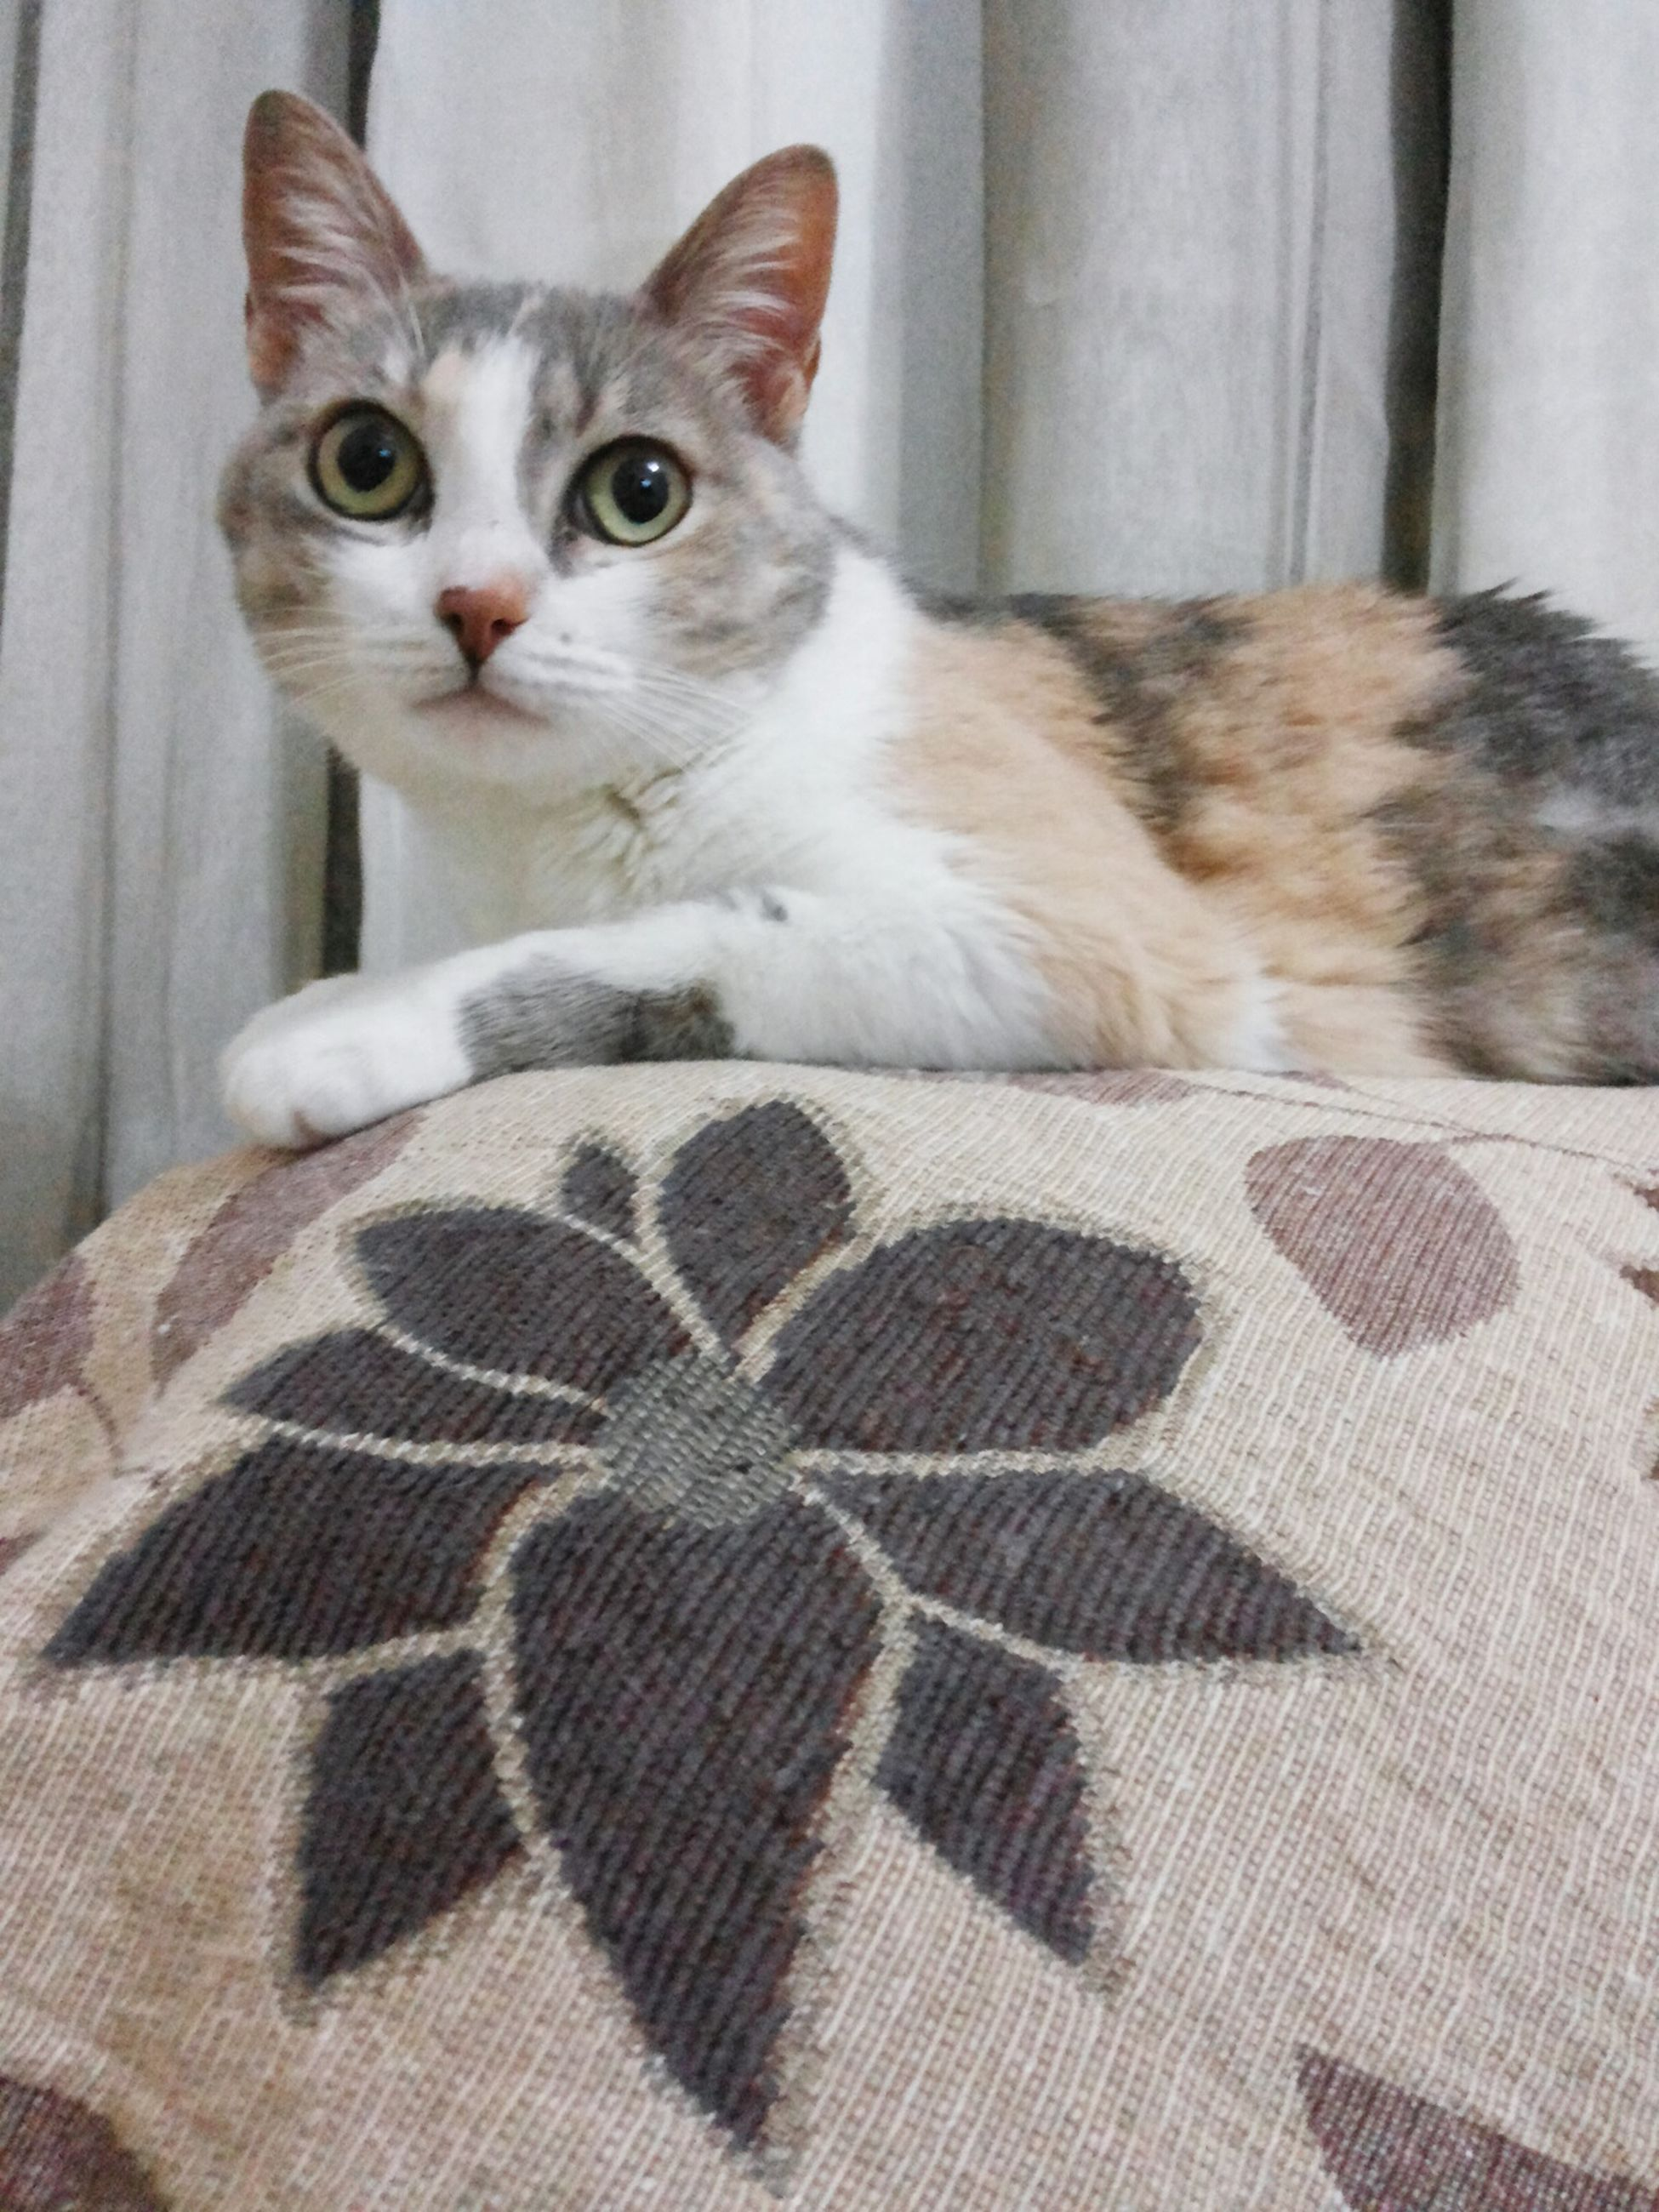 domestic animals, animal themes, pets, one animal, domestic cat, mammal, indoors, cat, feline, looking at camera, portrait, staring, close-up, front view, vertebrate, whisker, animal head, zoology, gray, at home, relaxation, selective focus, carnivora, animal, animal eye, kitten, animal hair